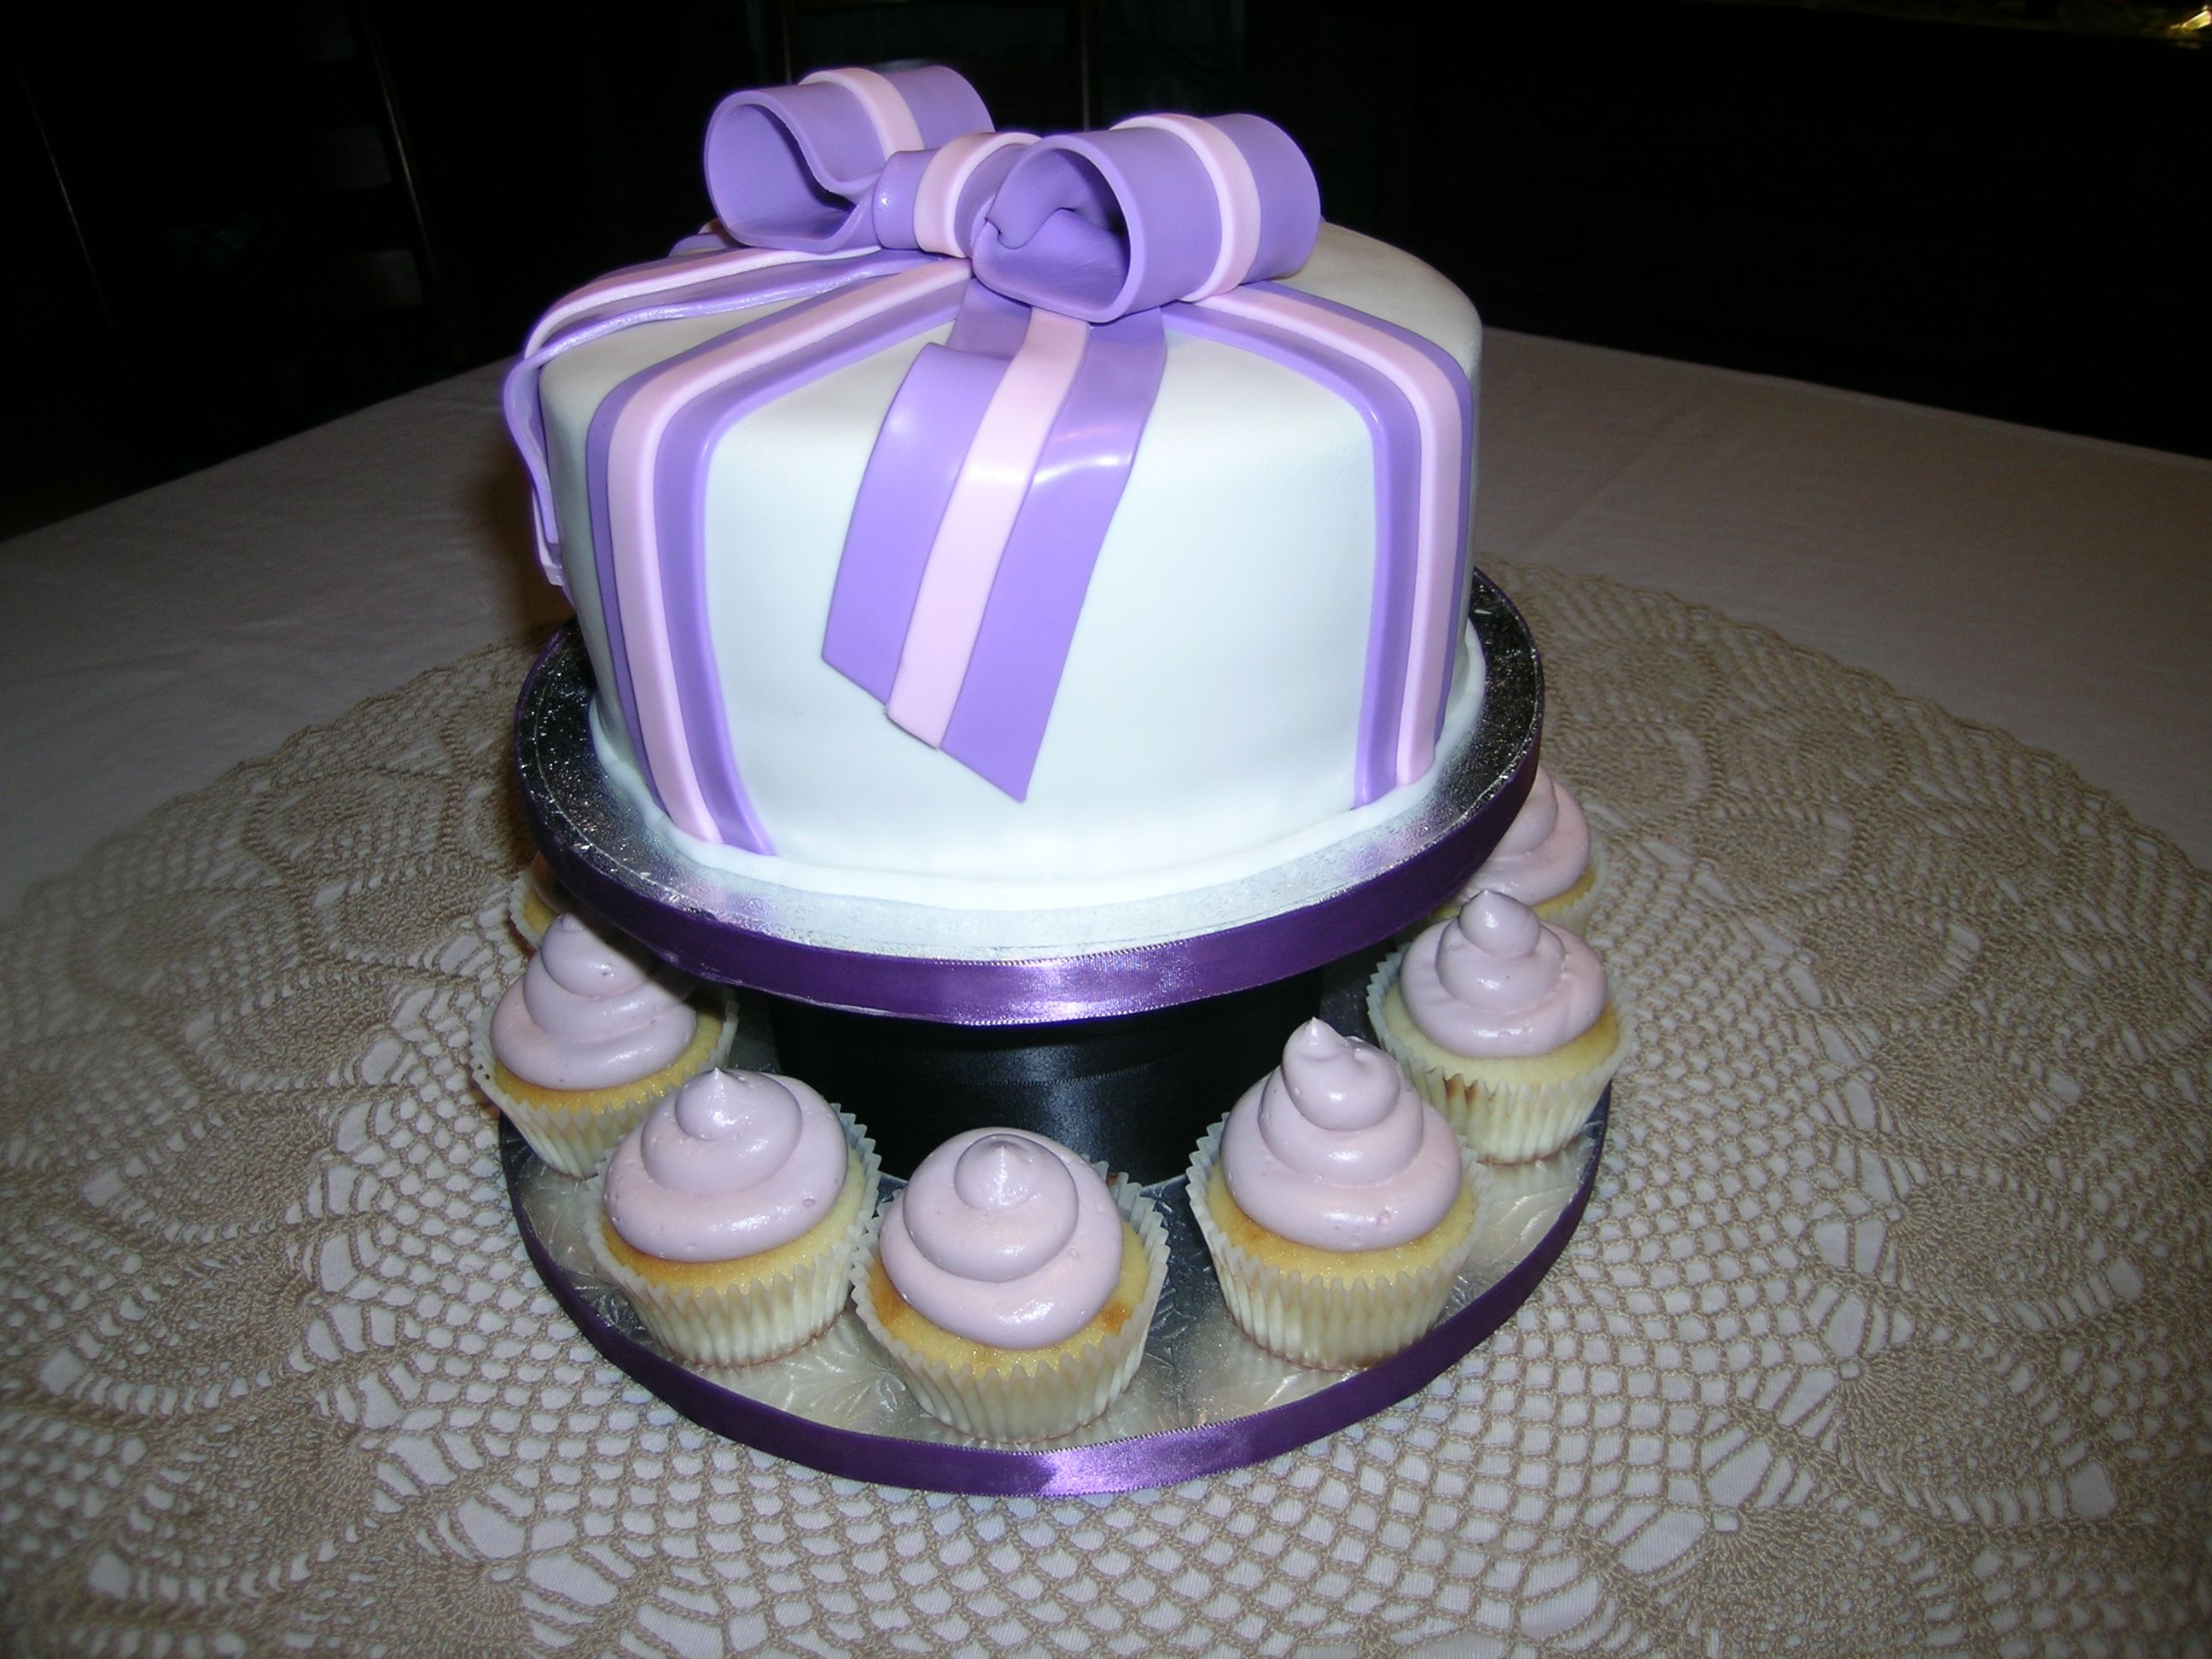 Cool birthday cakes for women submited images